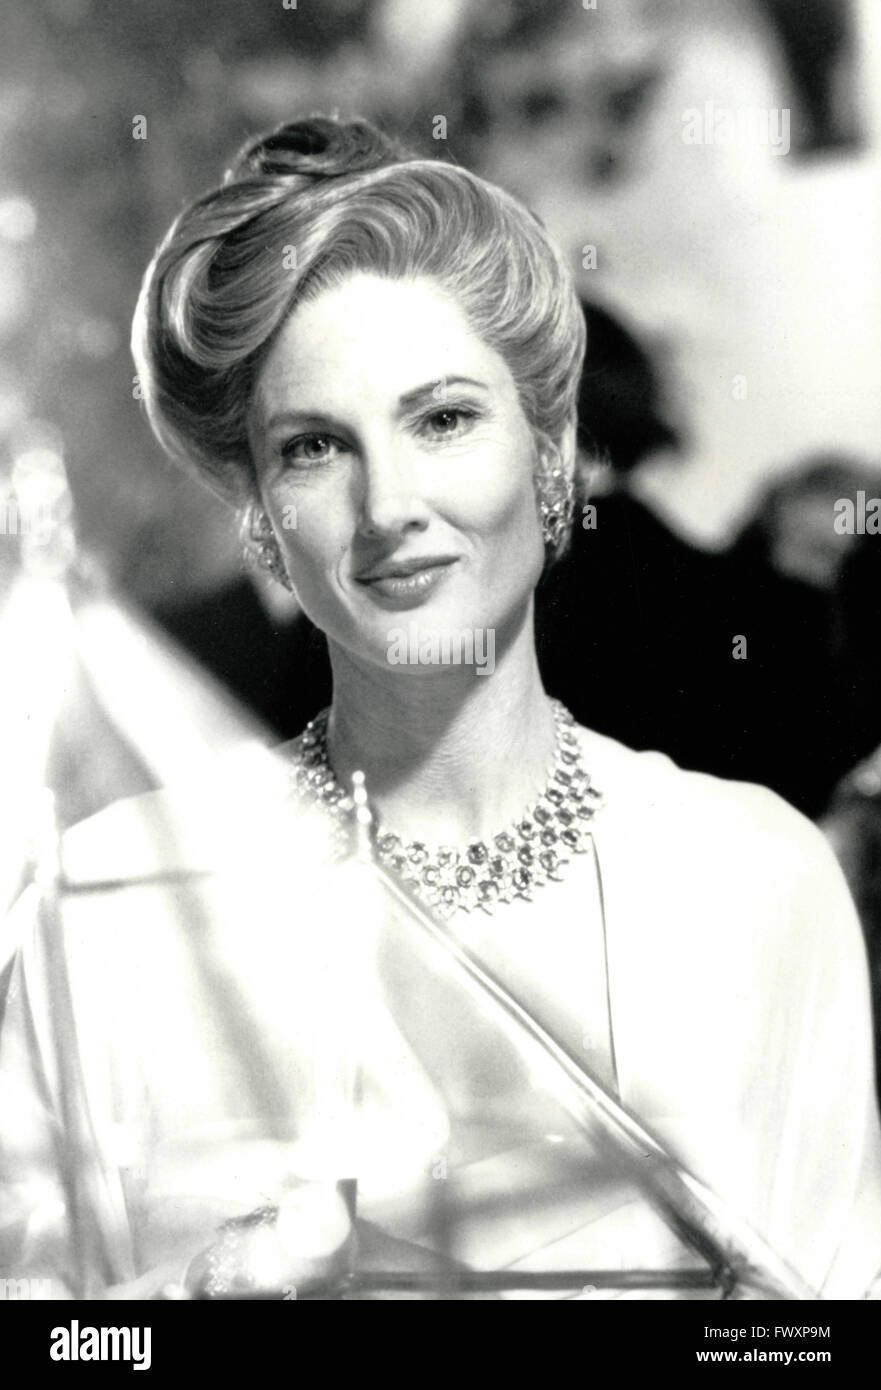 The actress Annette O'Toole in the film Jewels Stock Photo